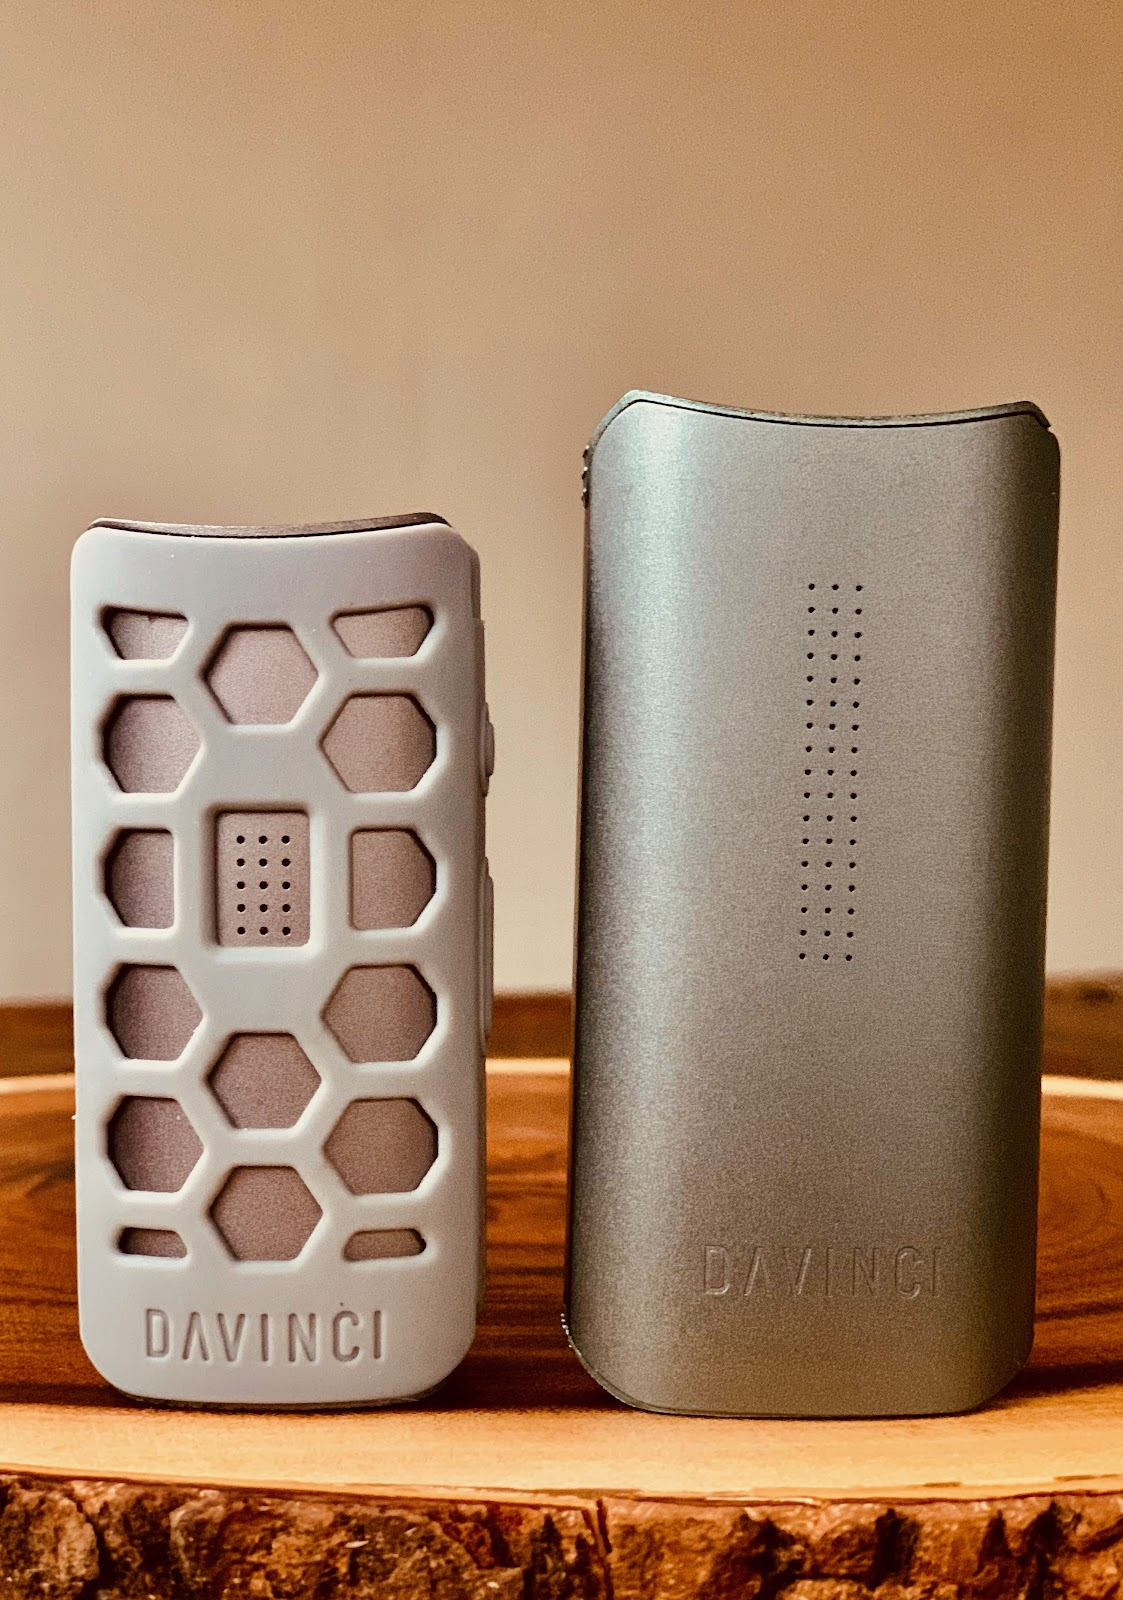 DaVinci Miqro vs. The DaVinci IQ